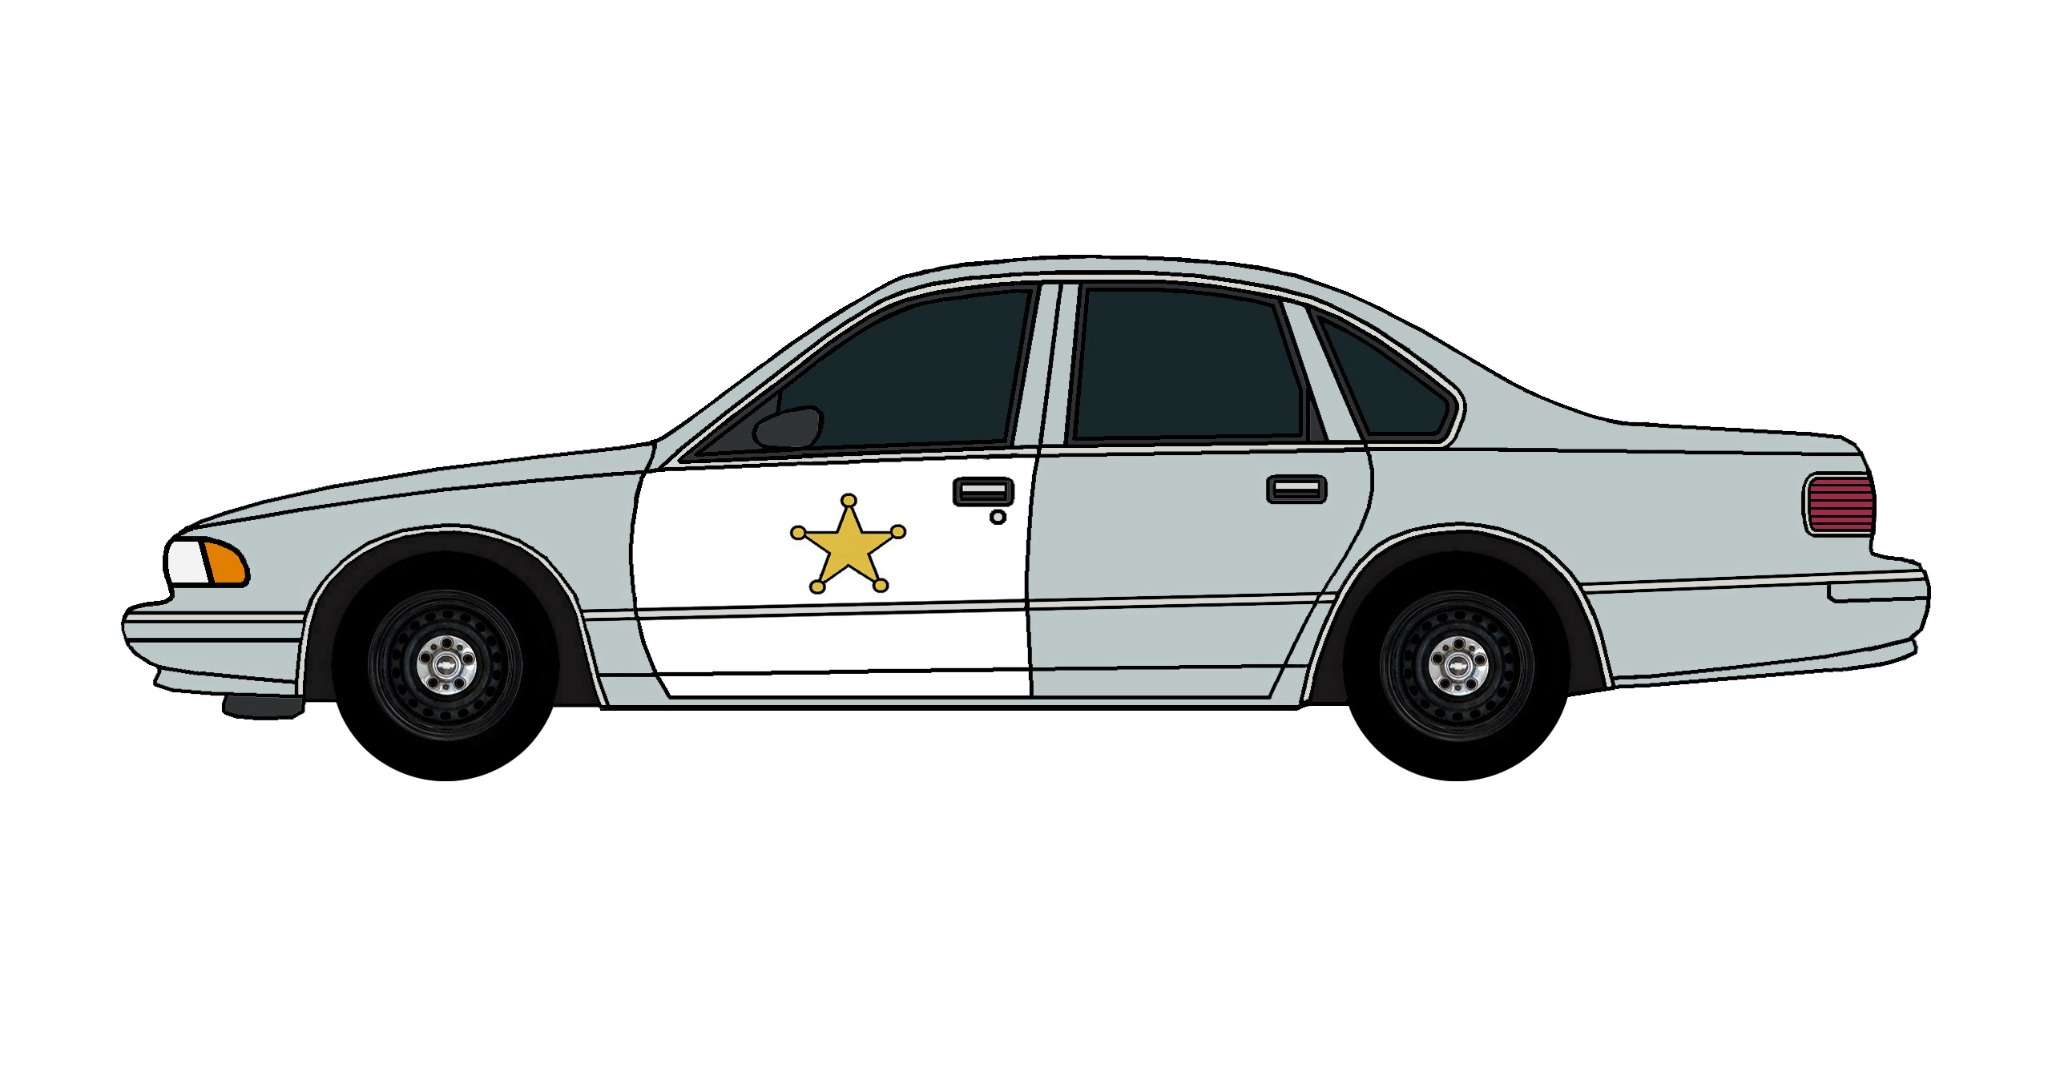 1995 Chevy Caprice Police Car SLATE BLUE